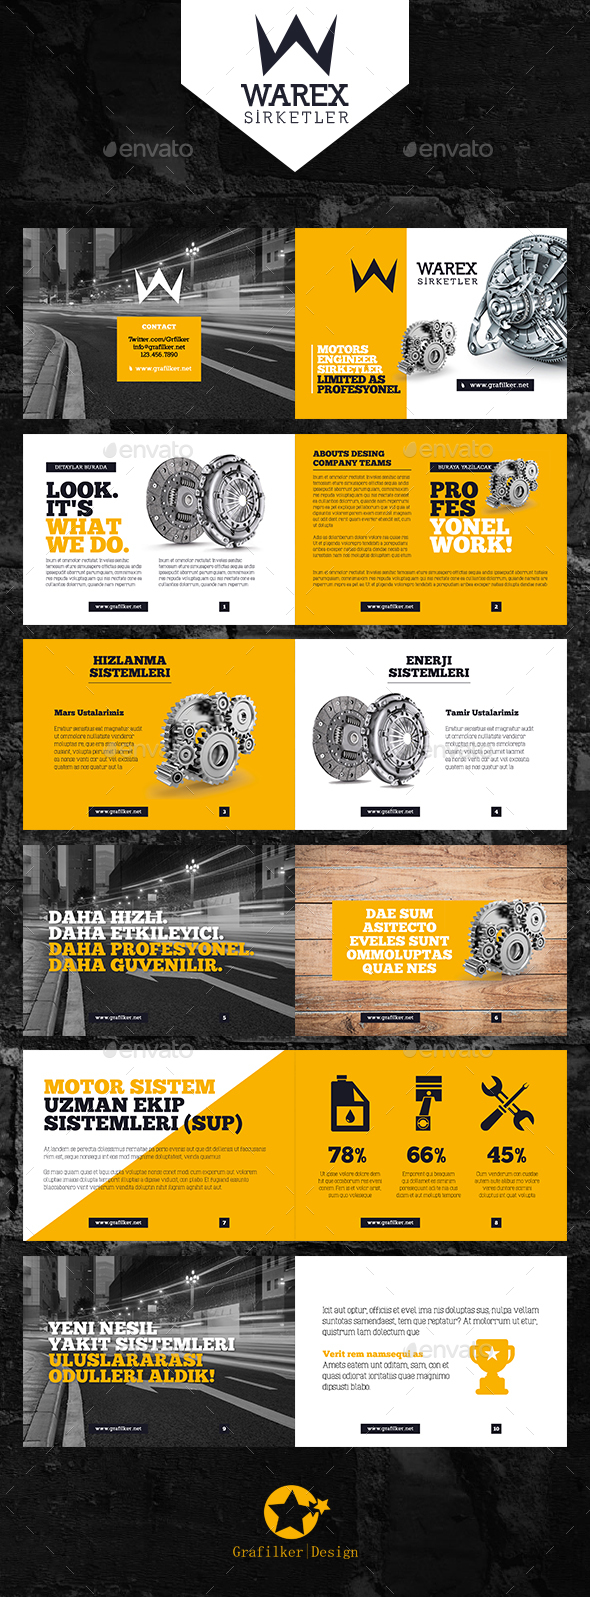 Product information brochure templates by grafilker for Information brochure template